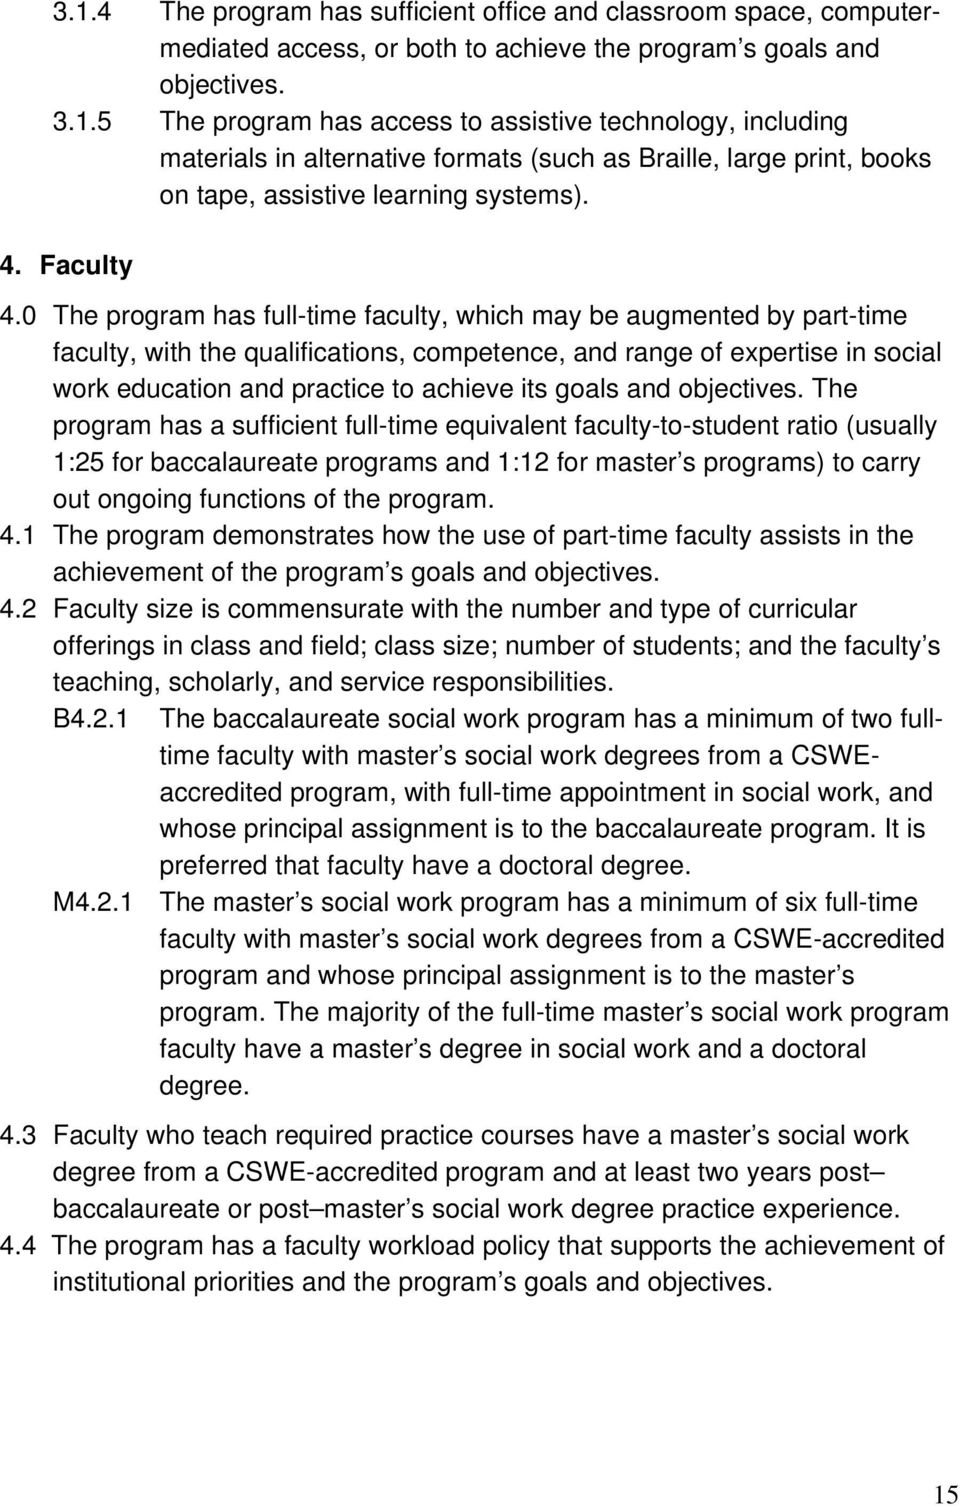 0 The program has full-time faculty, which may be augmented by part-time faculty, with the qualifications, competence, and range of expertise in social work education and practice to achieve its